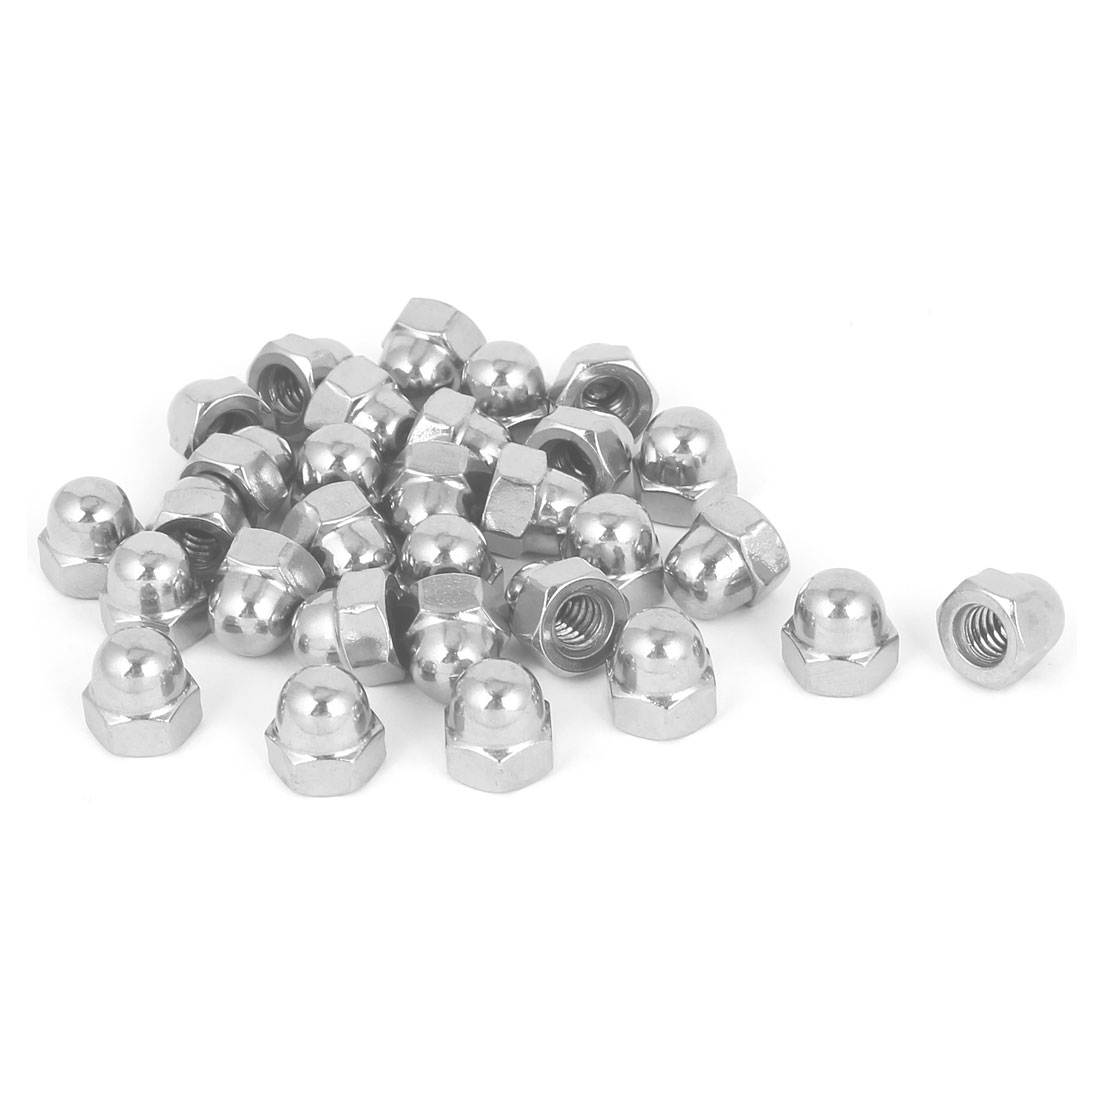 "1/4""-20 304 Stainless Steel Dome Head Cap Hexagon Nuts Silver Tone 30pcs"